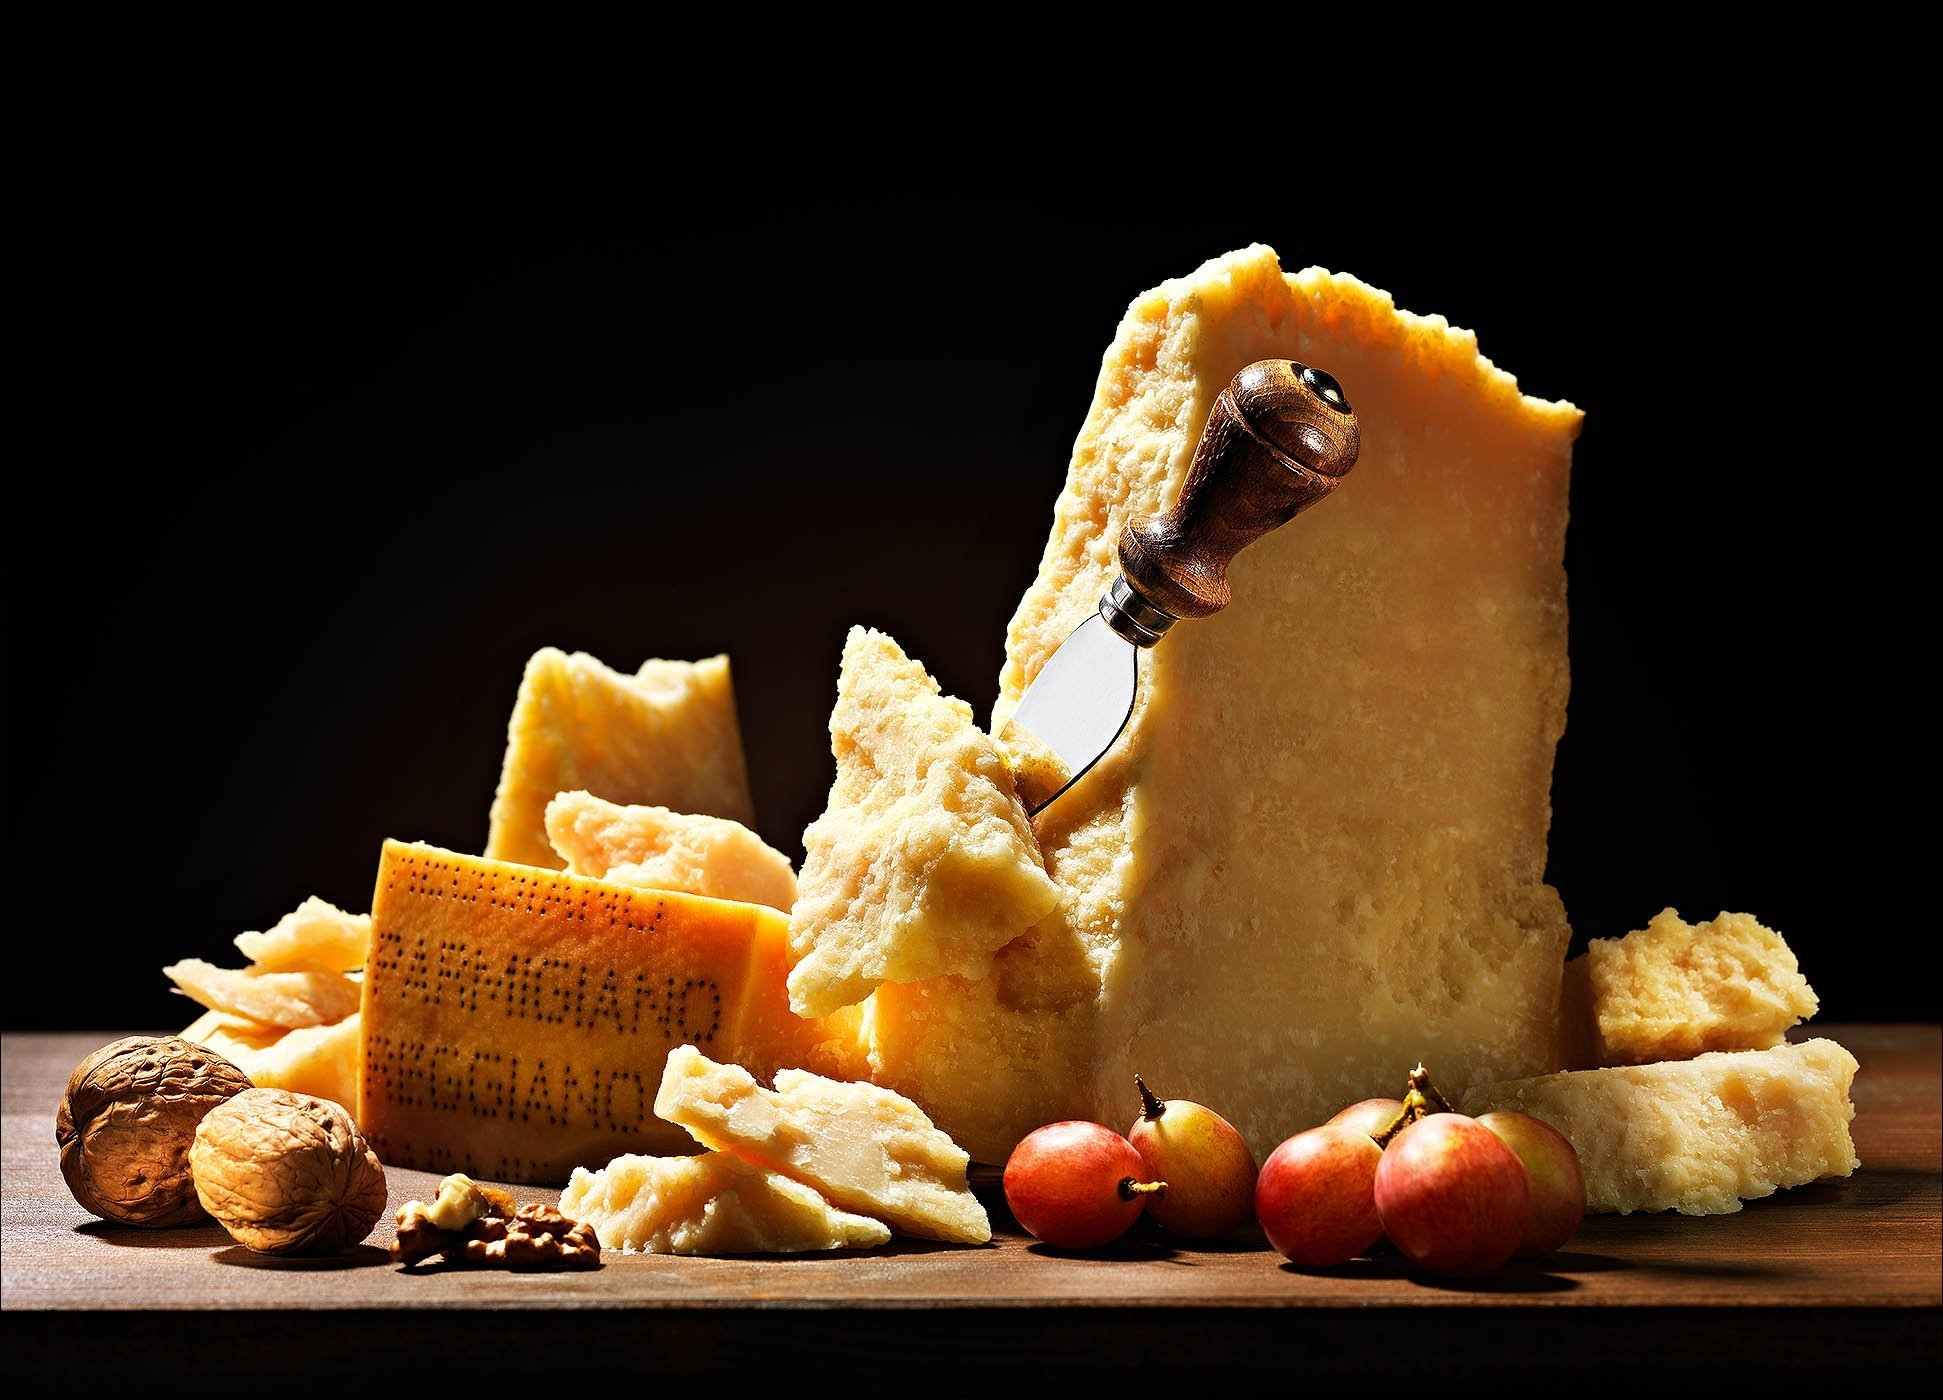 Food fotografo still life Parmigiano Reggiano | Andrea Sudati Photo Studio